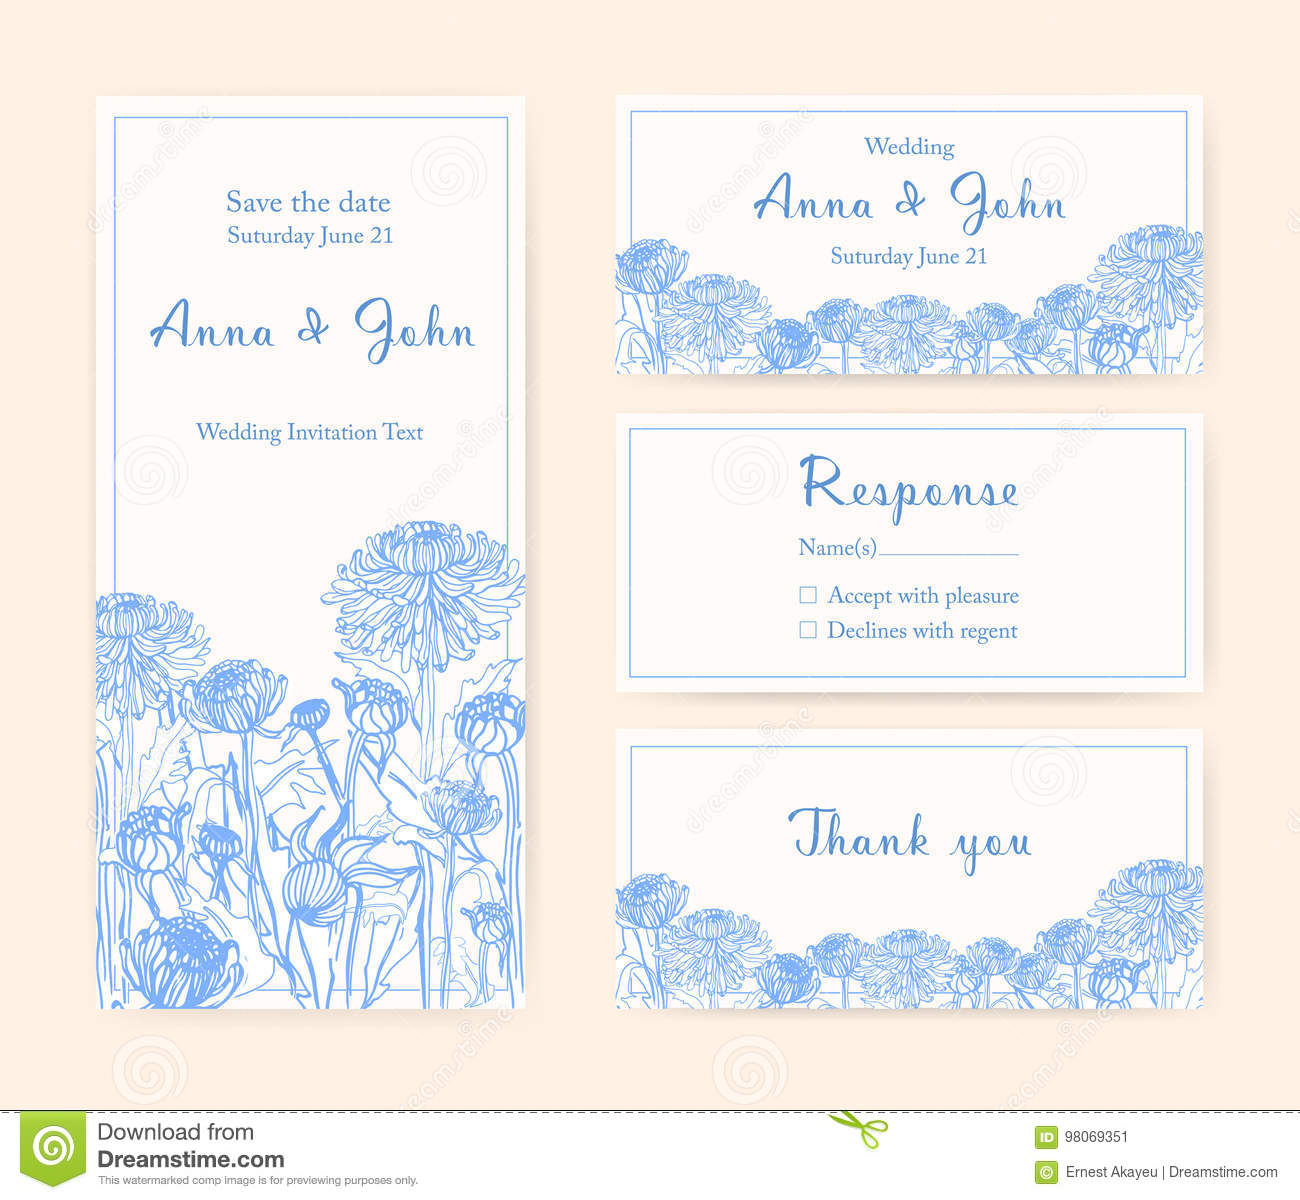 Wedding invitation cards with chrysanthemum. Different vertical and horizontal compositions. Monochrome vector